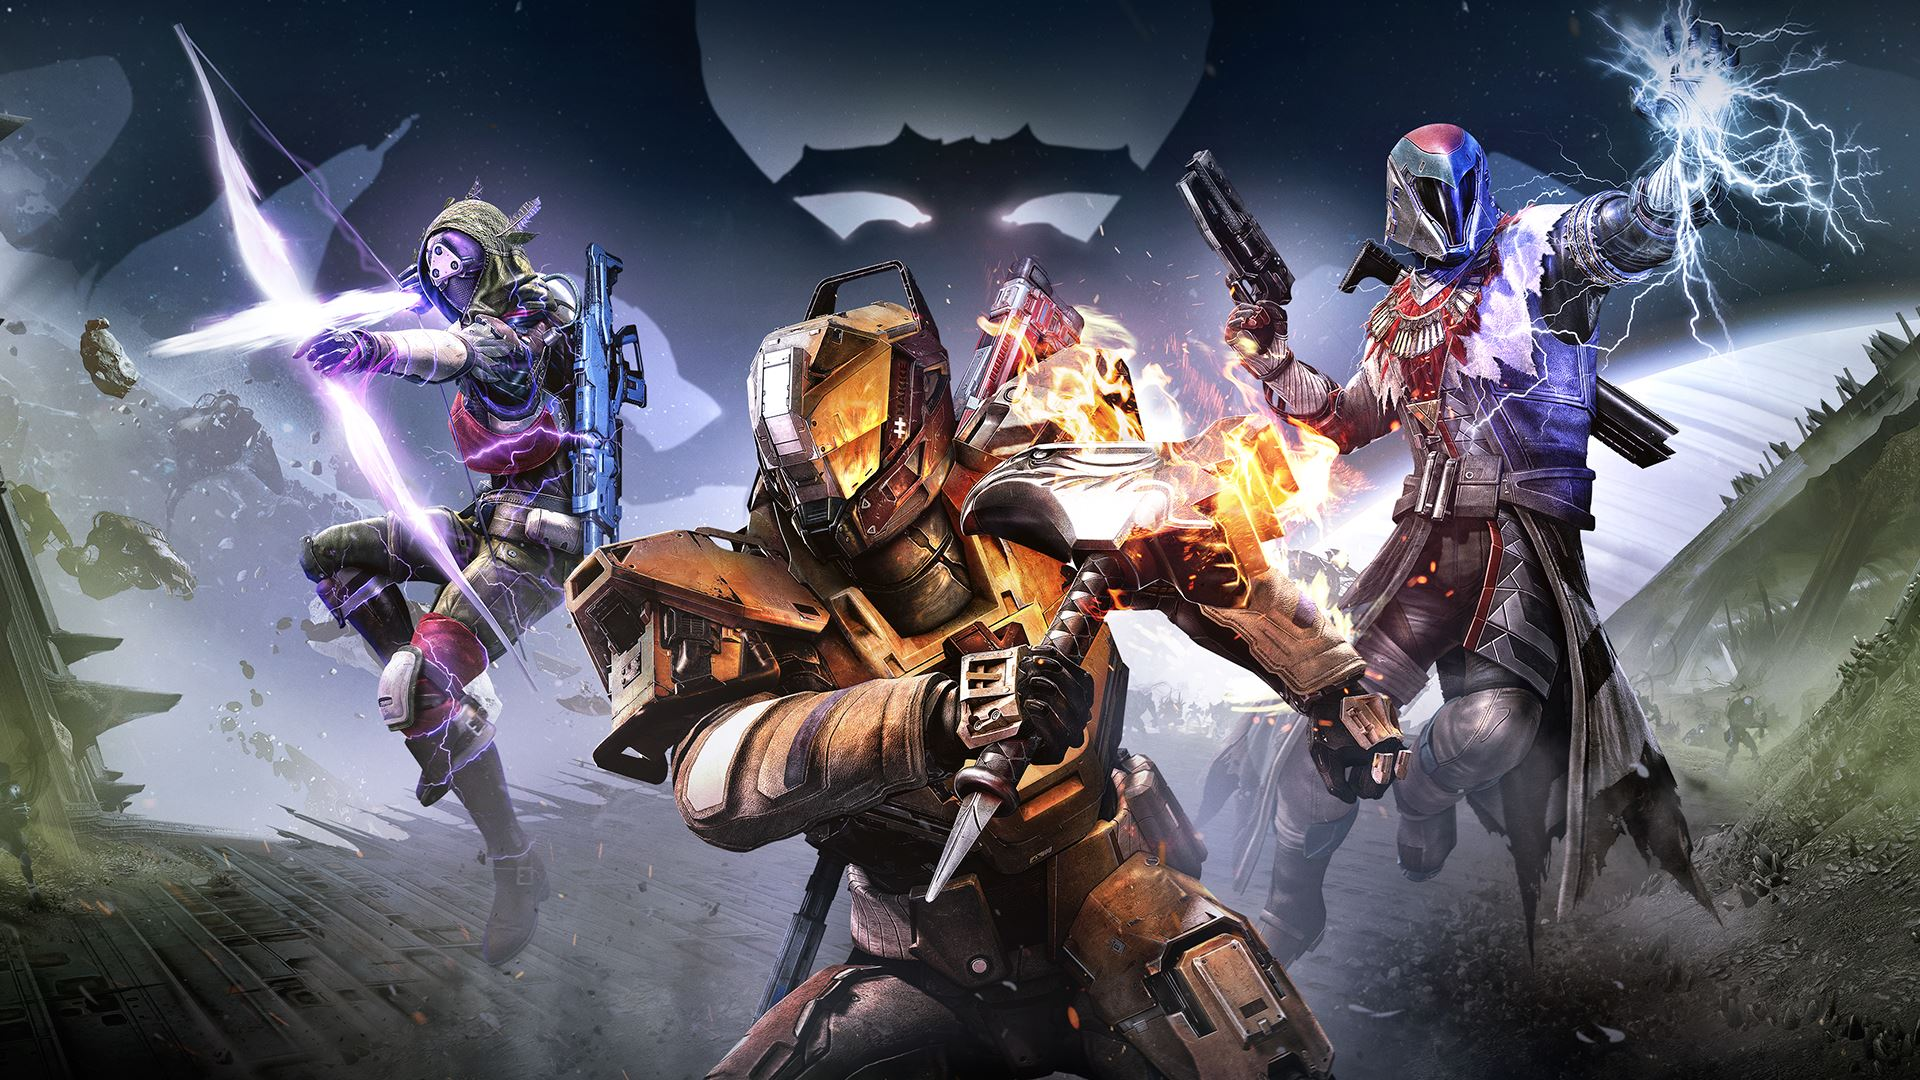 Destiny graphic free stock Bungie's Disastrous 'Taken King' Interview Could Have ... graphic free stock